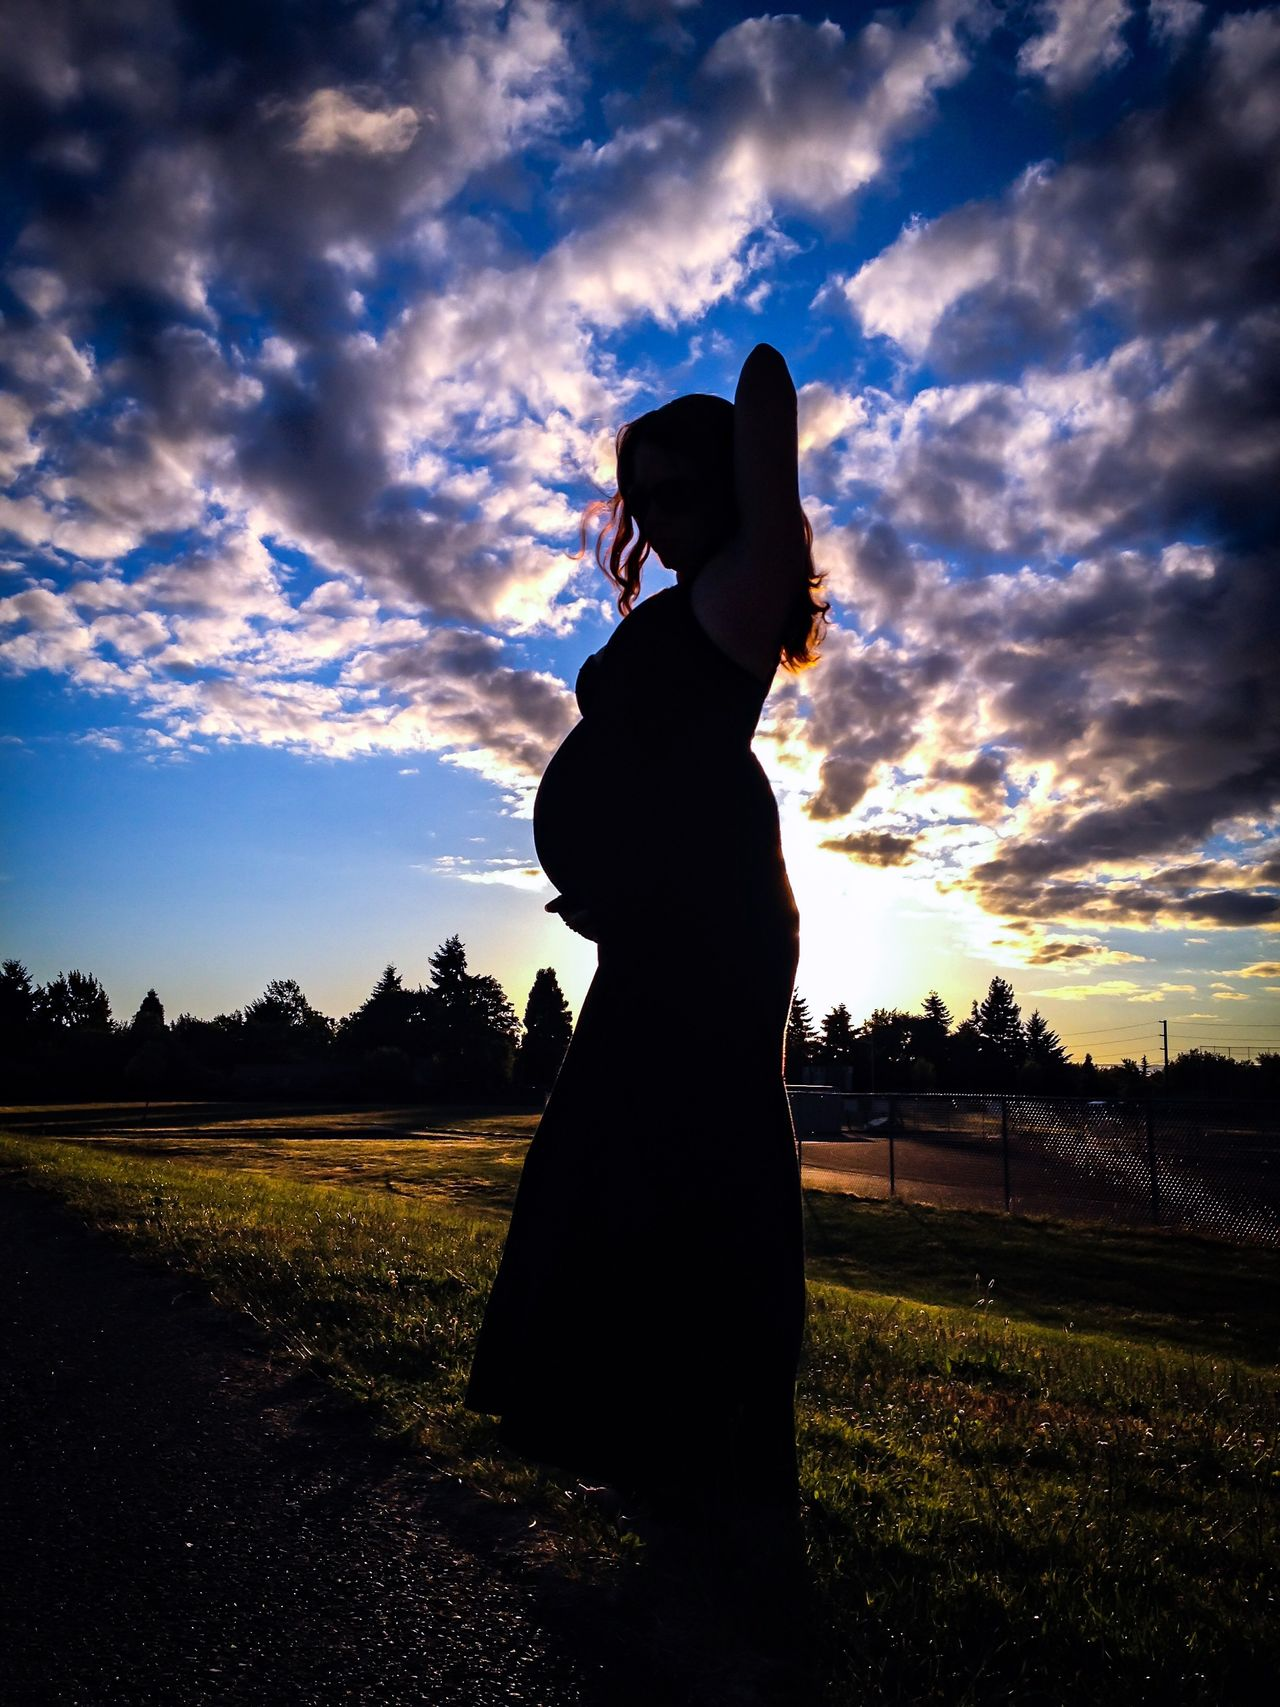 Beauty In Nature Cloud Cloud - Sky Idyllic Nature Non Urban Scene Non-urban Scene Outdoors Pregnant Pregnant Photography Remote Scenics Shot Of A Life Silhouette Sky Sunset Tranquil Scene Tranquility